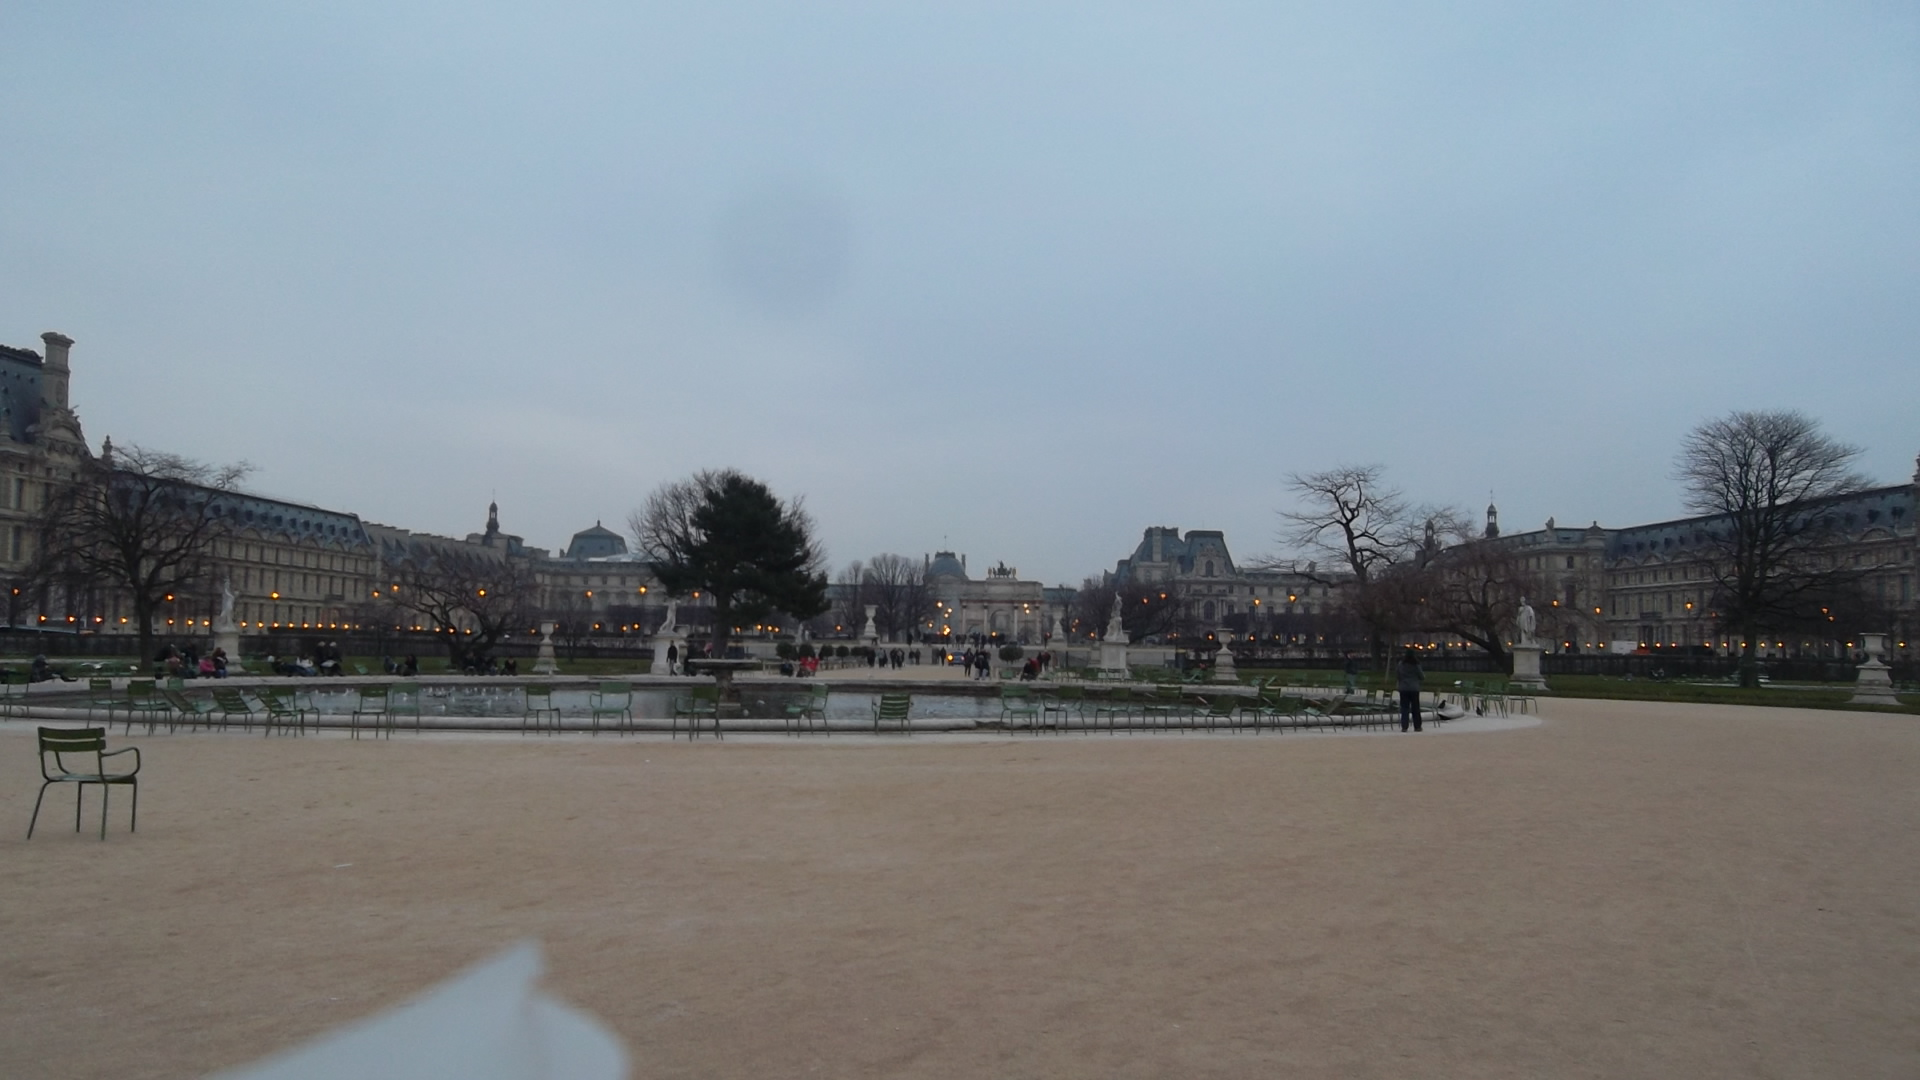 paris louvre musee from tuileries gardens mar13